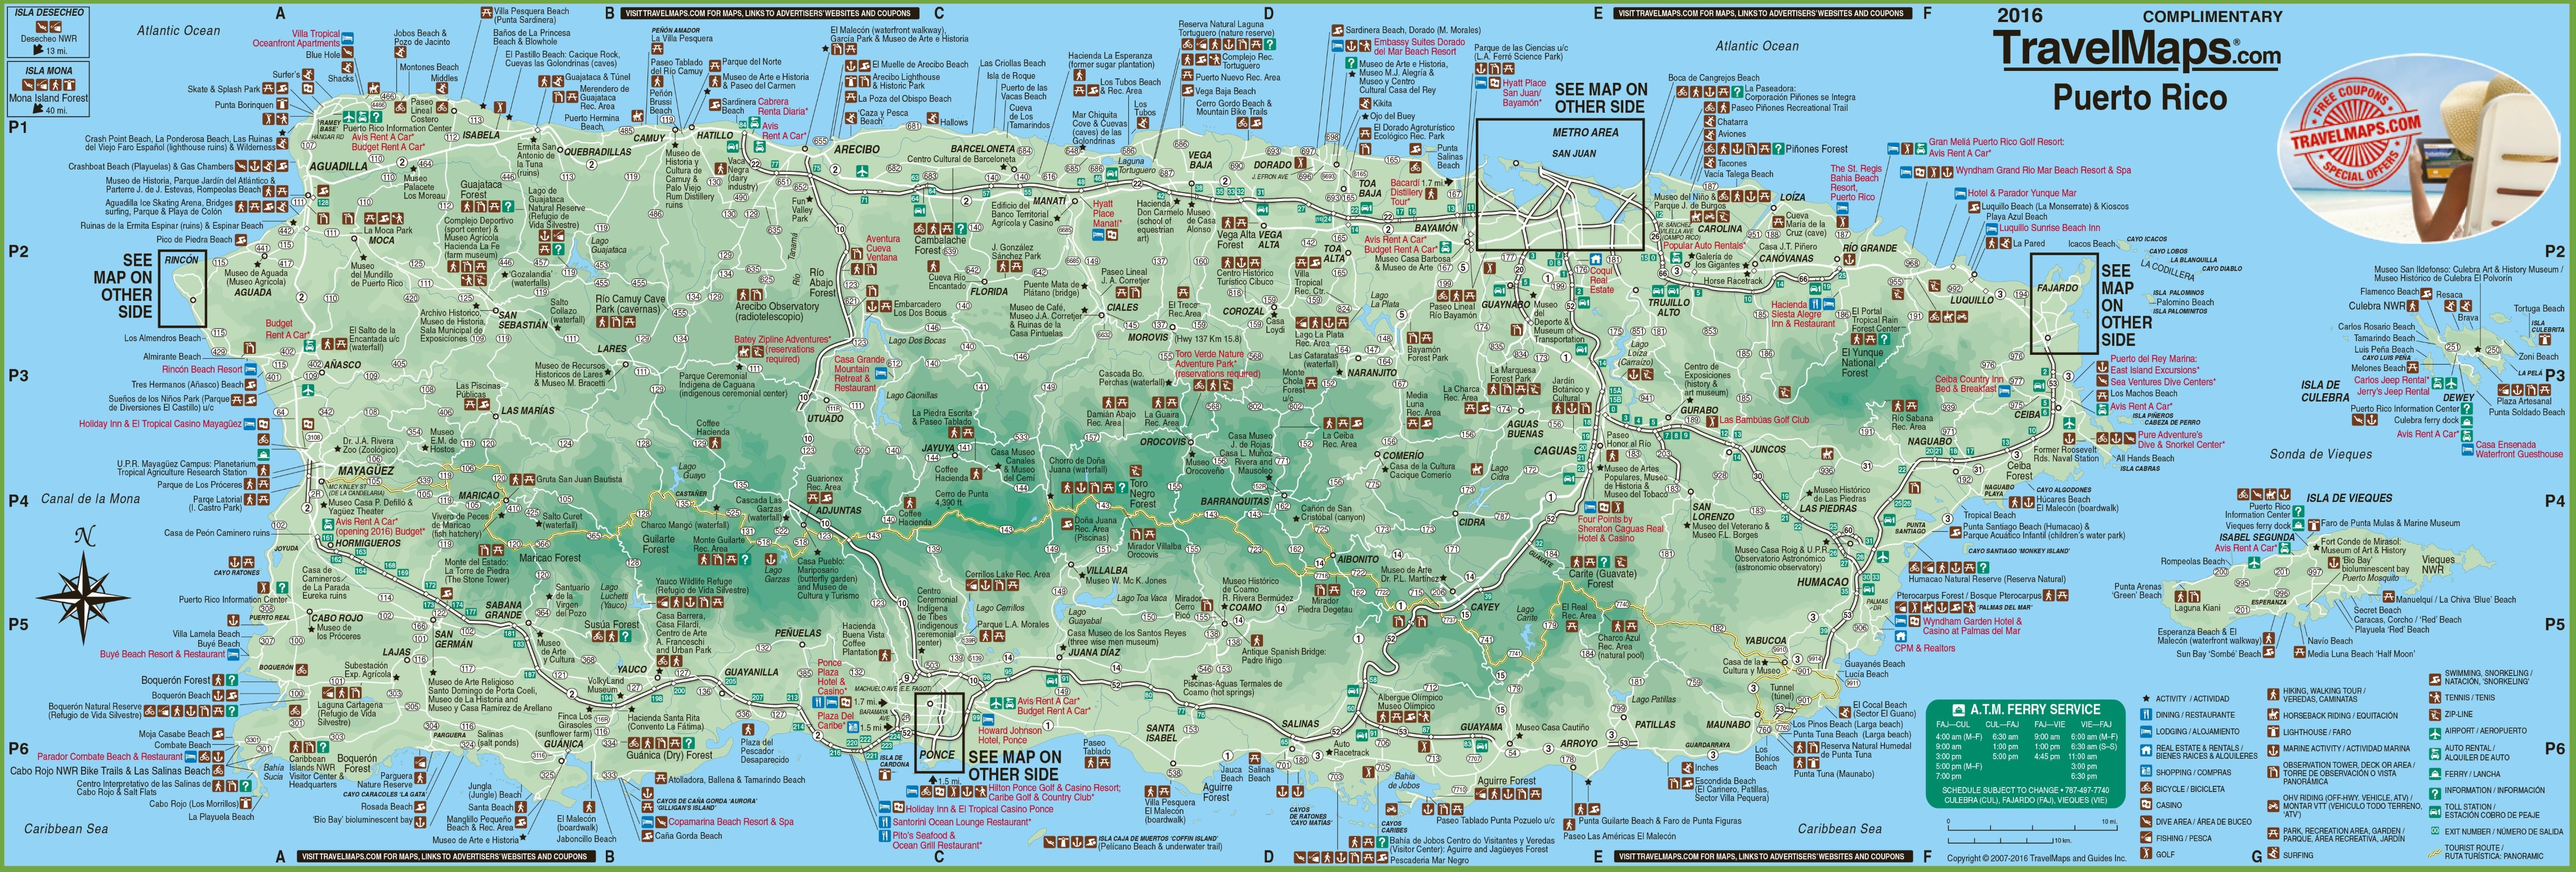 It's just a graphic of Adaptable Printable Map of Puerto Rico